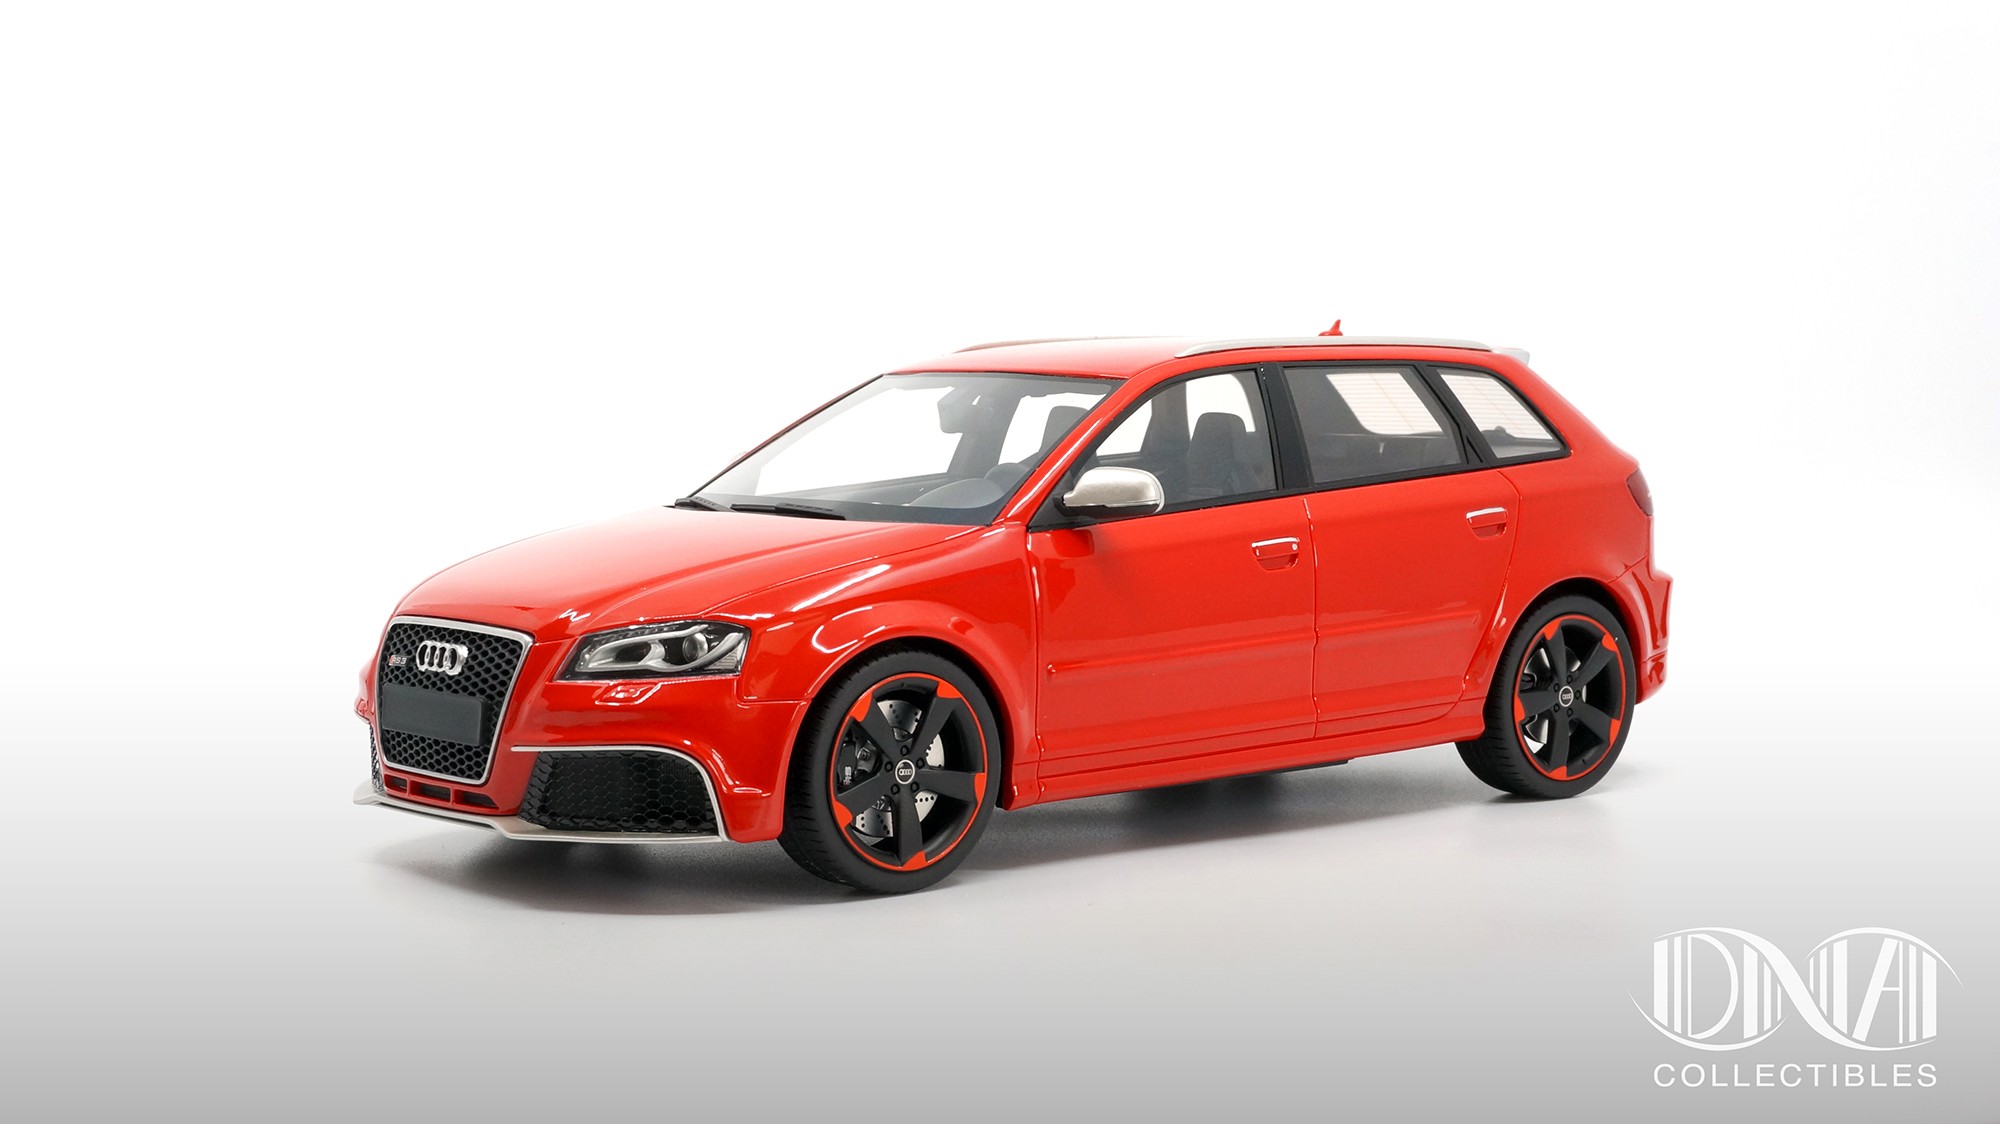 audi-rs3-dna-collectibles